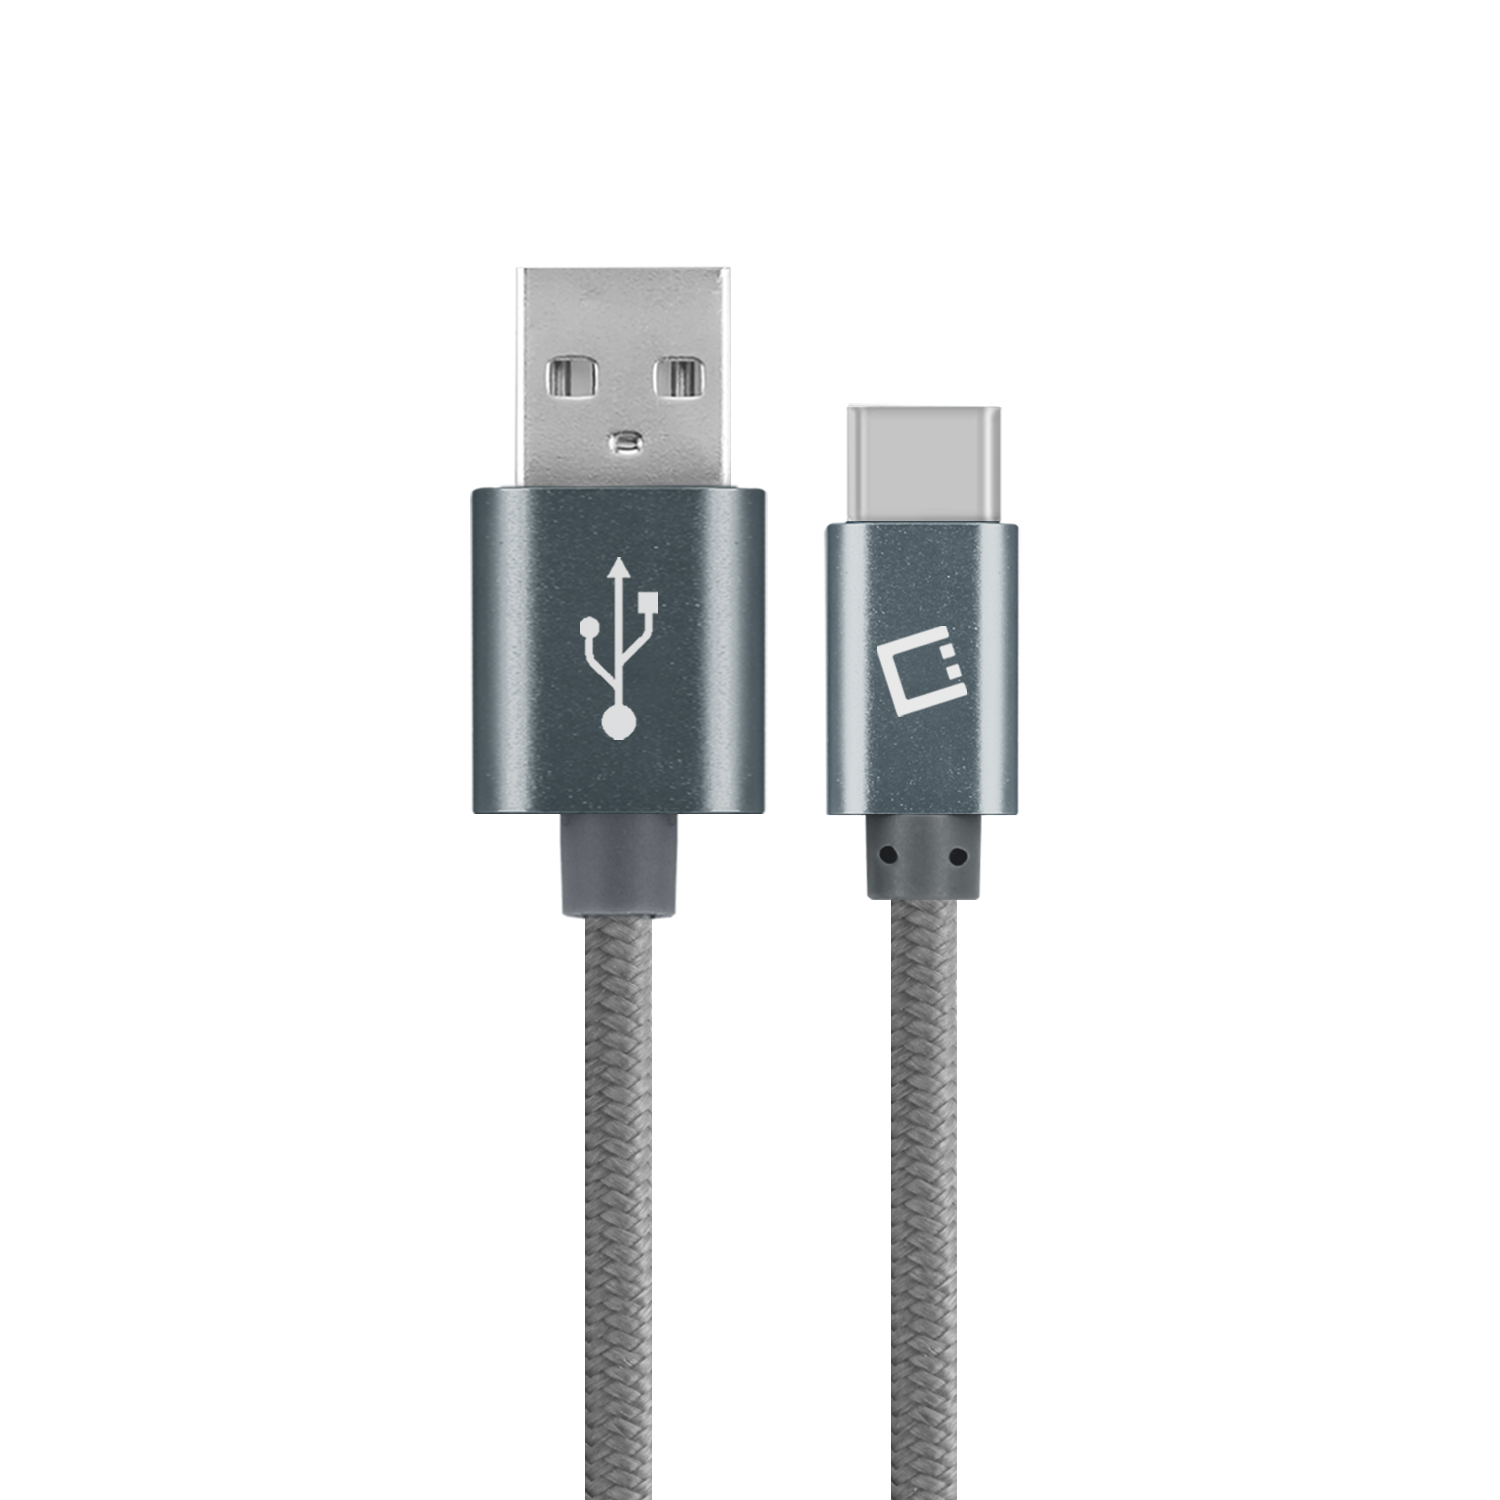 LG G8X ThinQ USB Type-C To Type-A Braided Data Power Cable Grey 10ft Braided